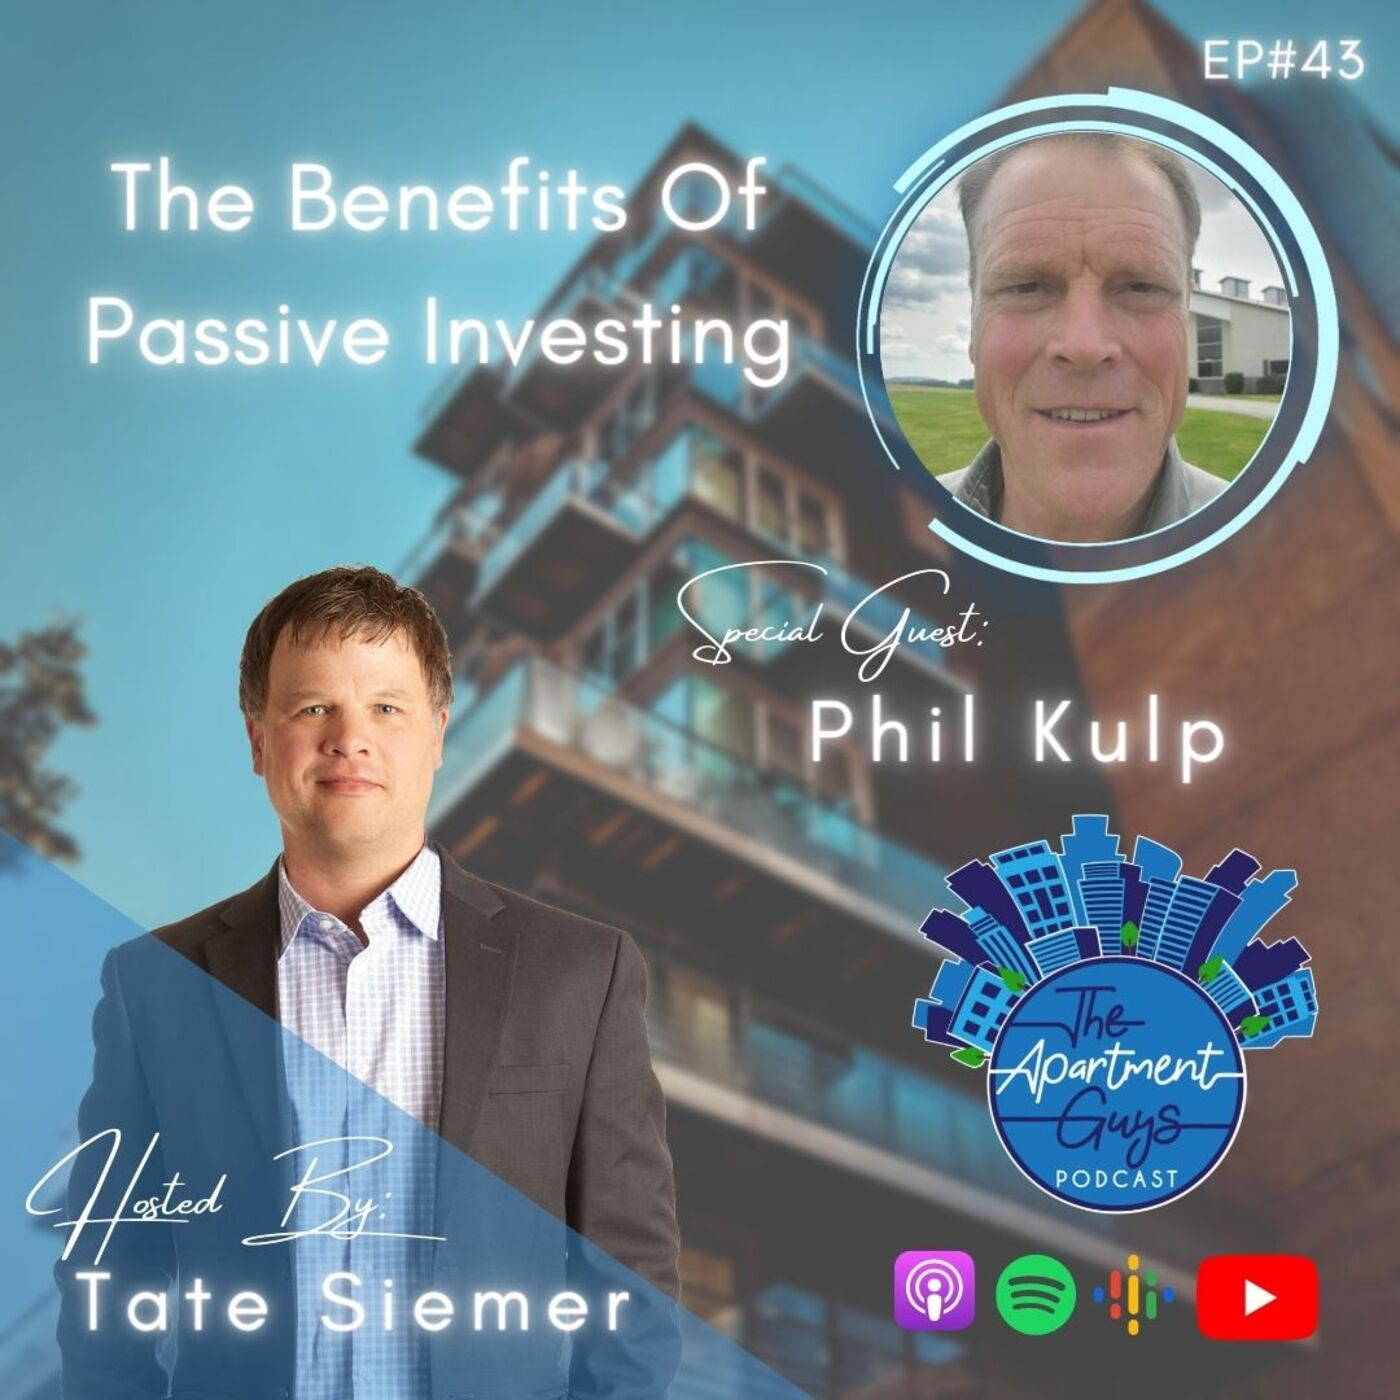 Episode 043: Phil Kulp - The Benefits Of Passive Investing